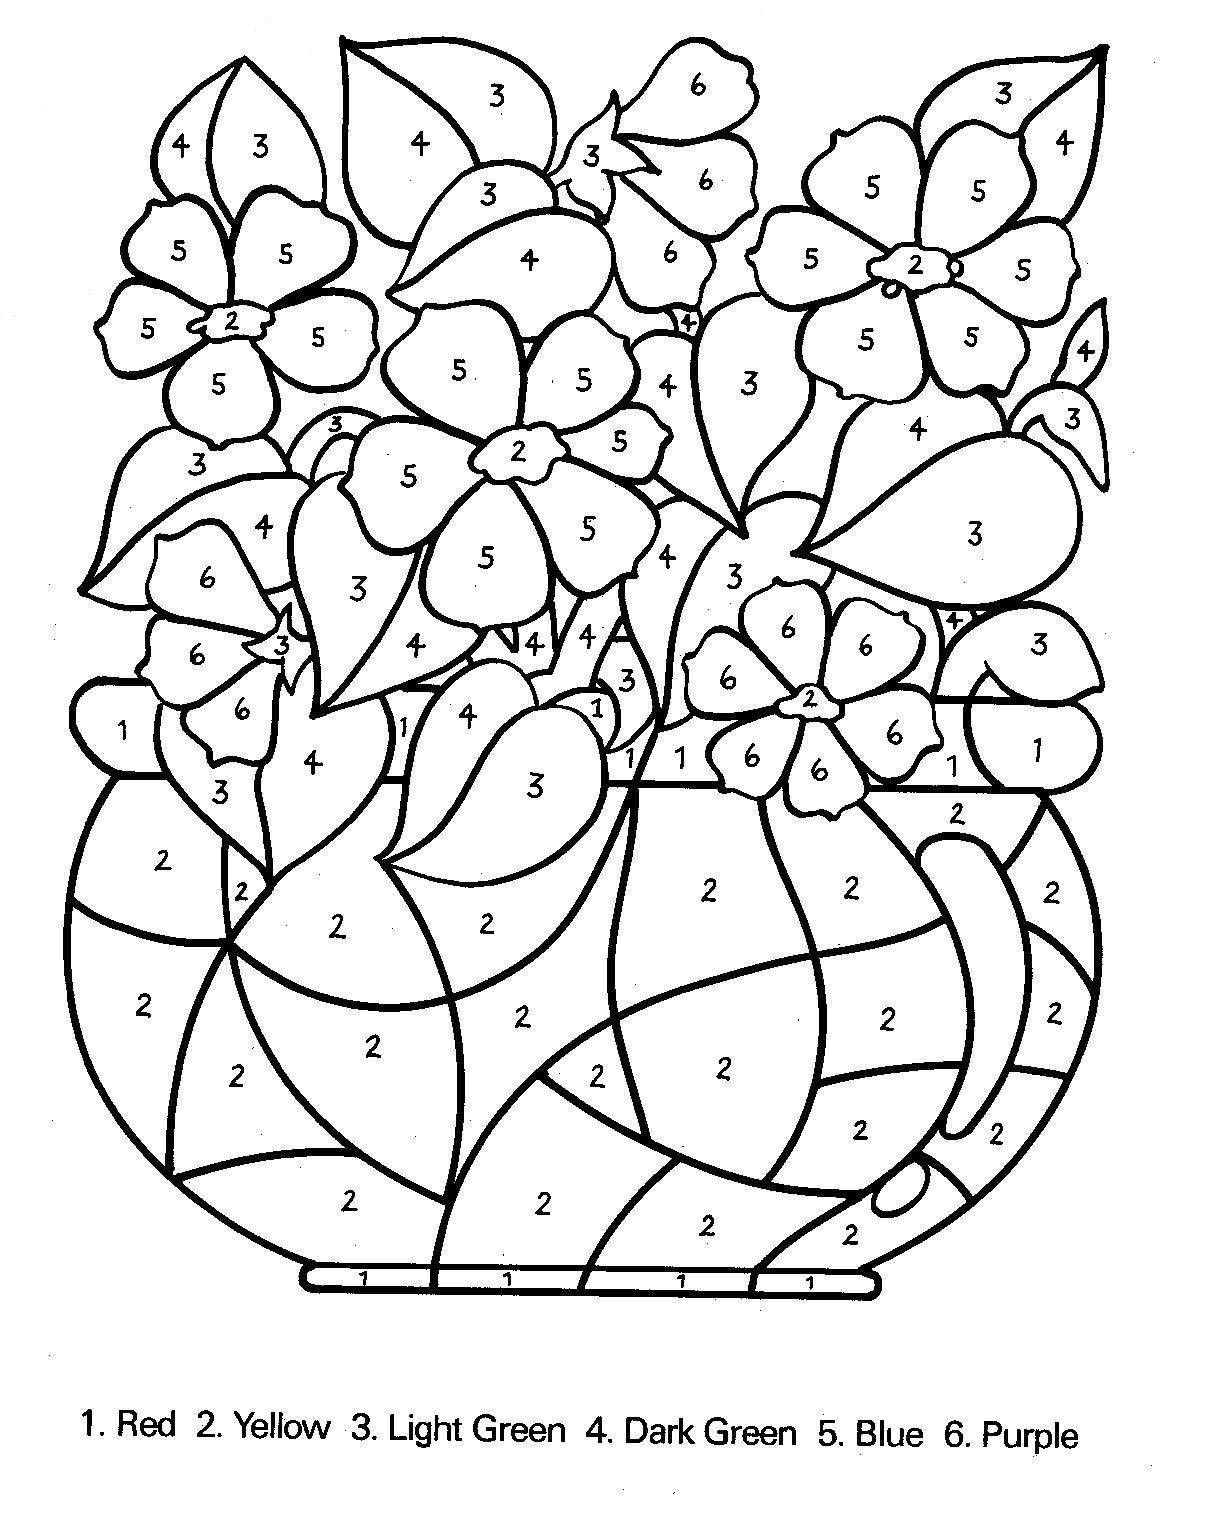 Free coloring pages for young adults - Color By Number Flowers Adults Coloring Pages Printable And Coloring Book To Print For Free Find More Coloring Pages Online For Kids And Adults Of Color By